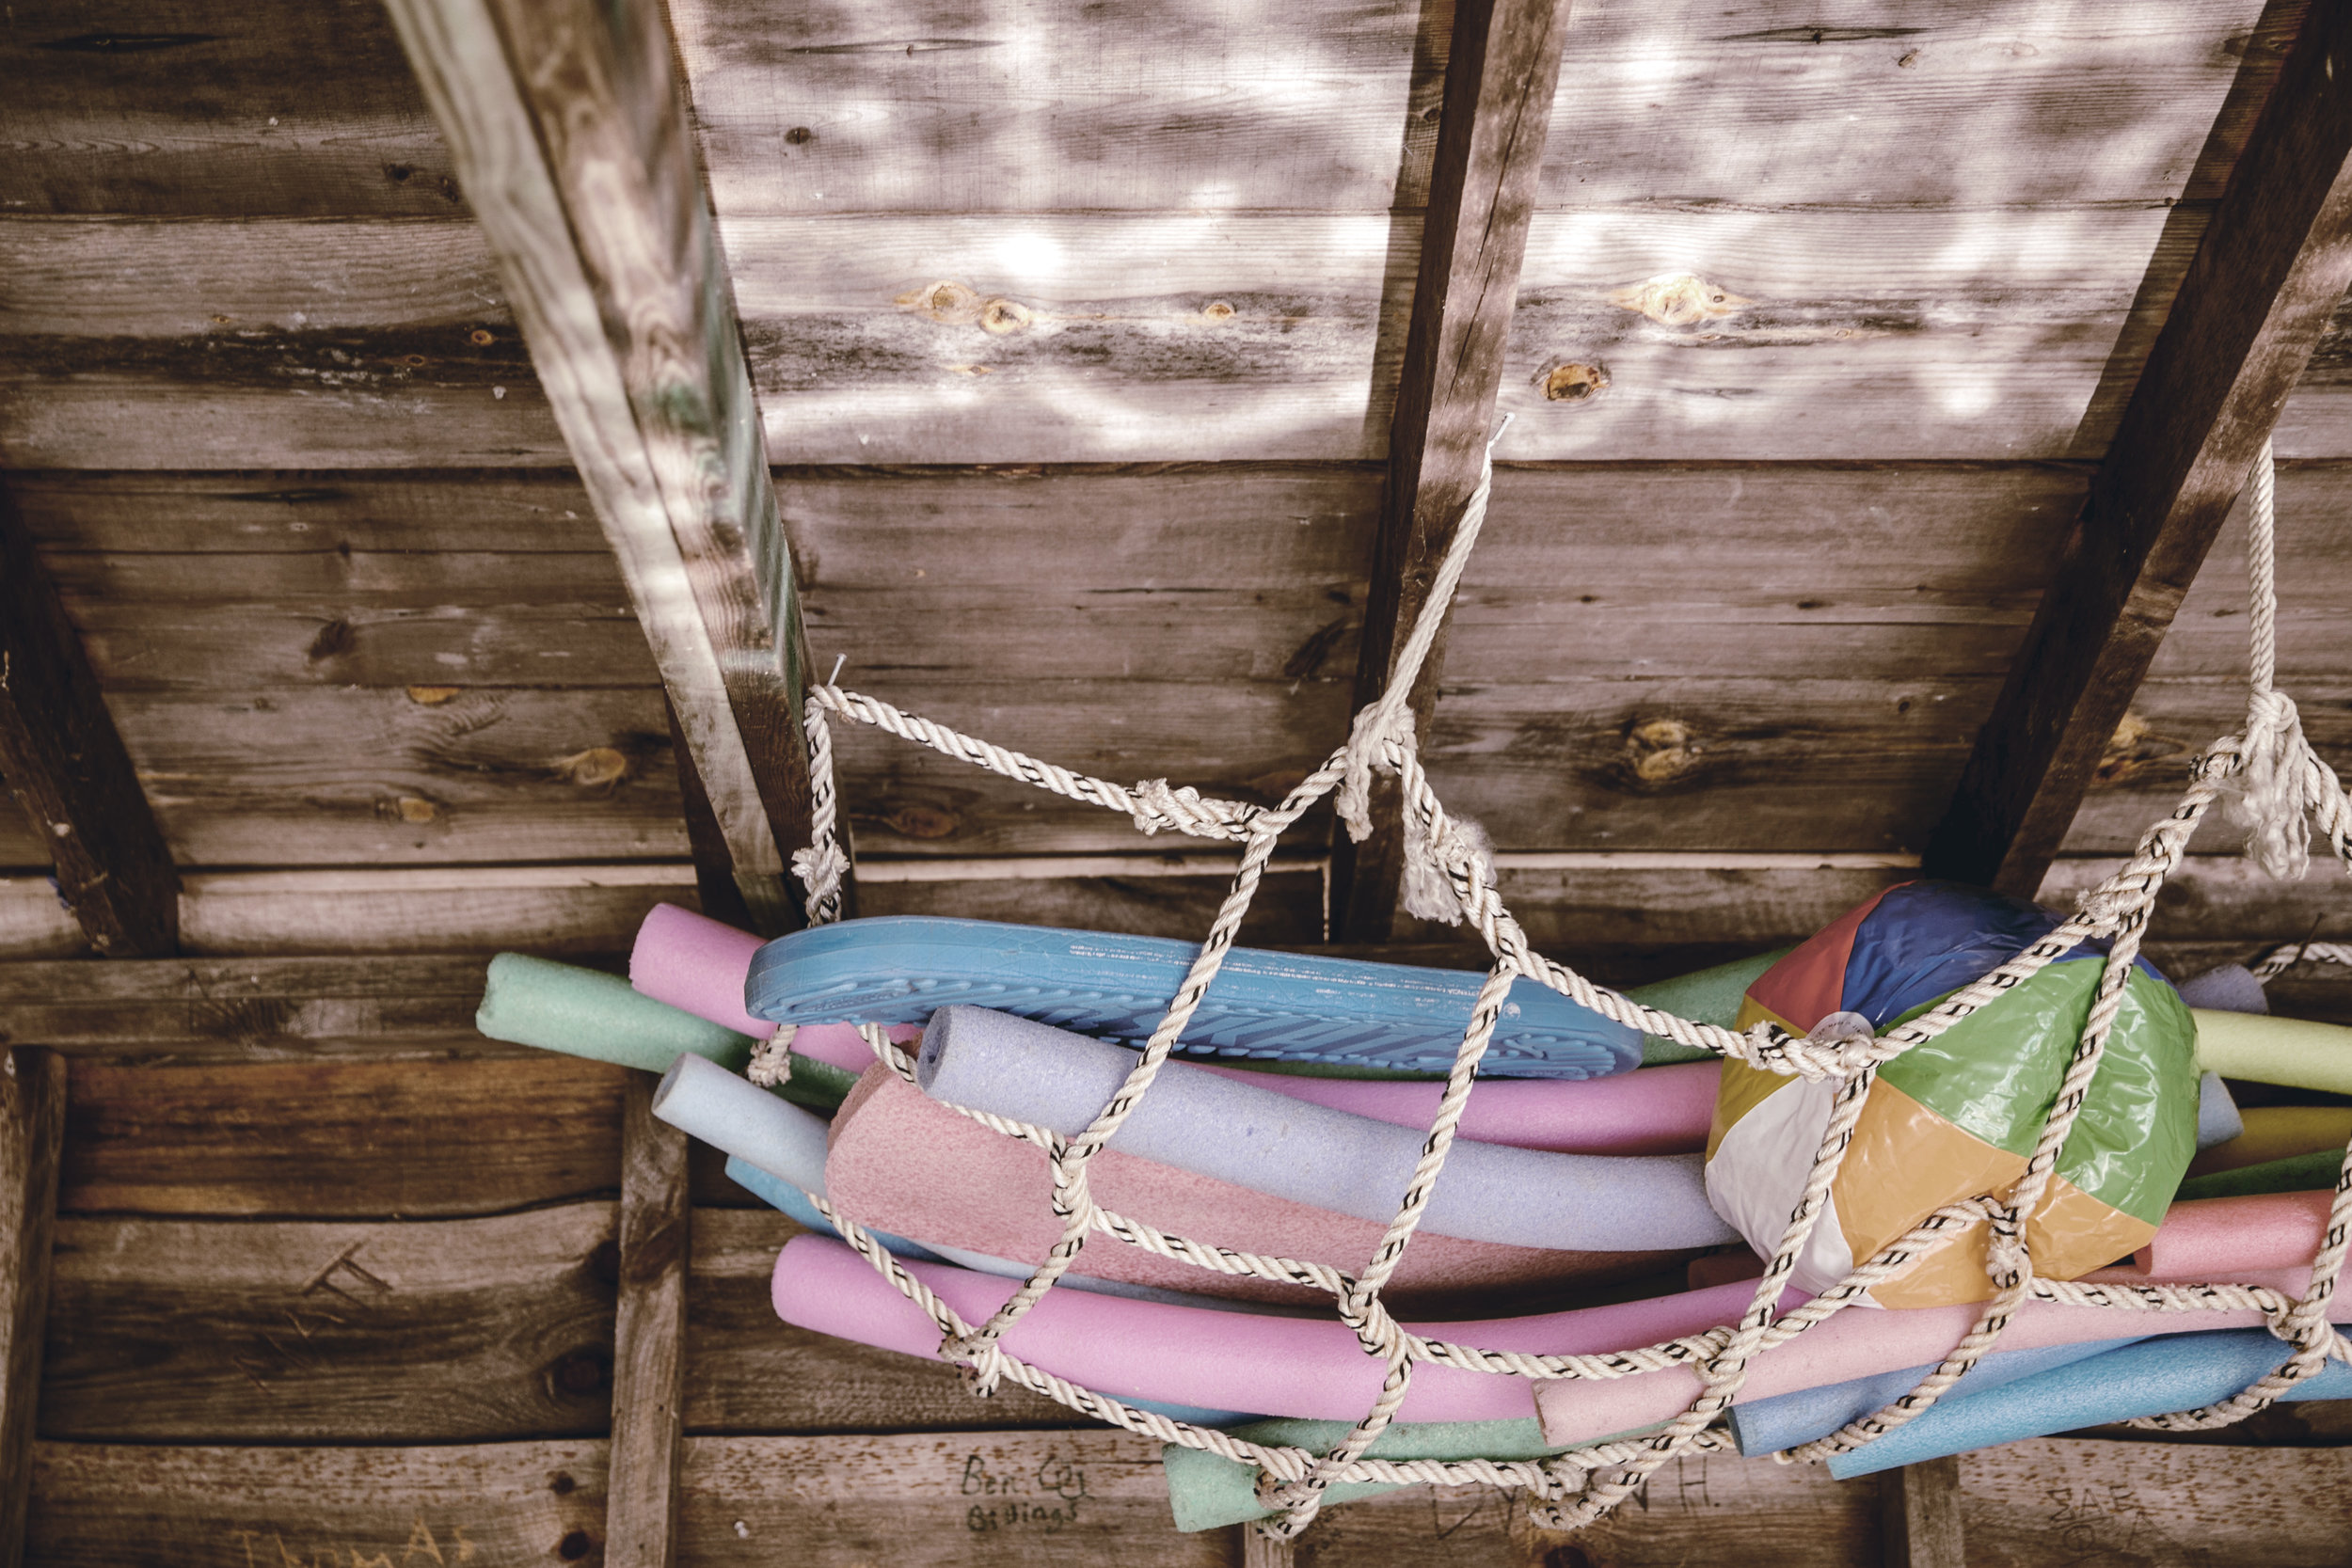 boat house toys / heirloomed